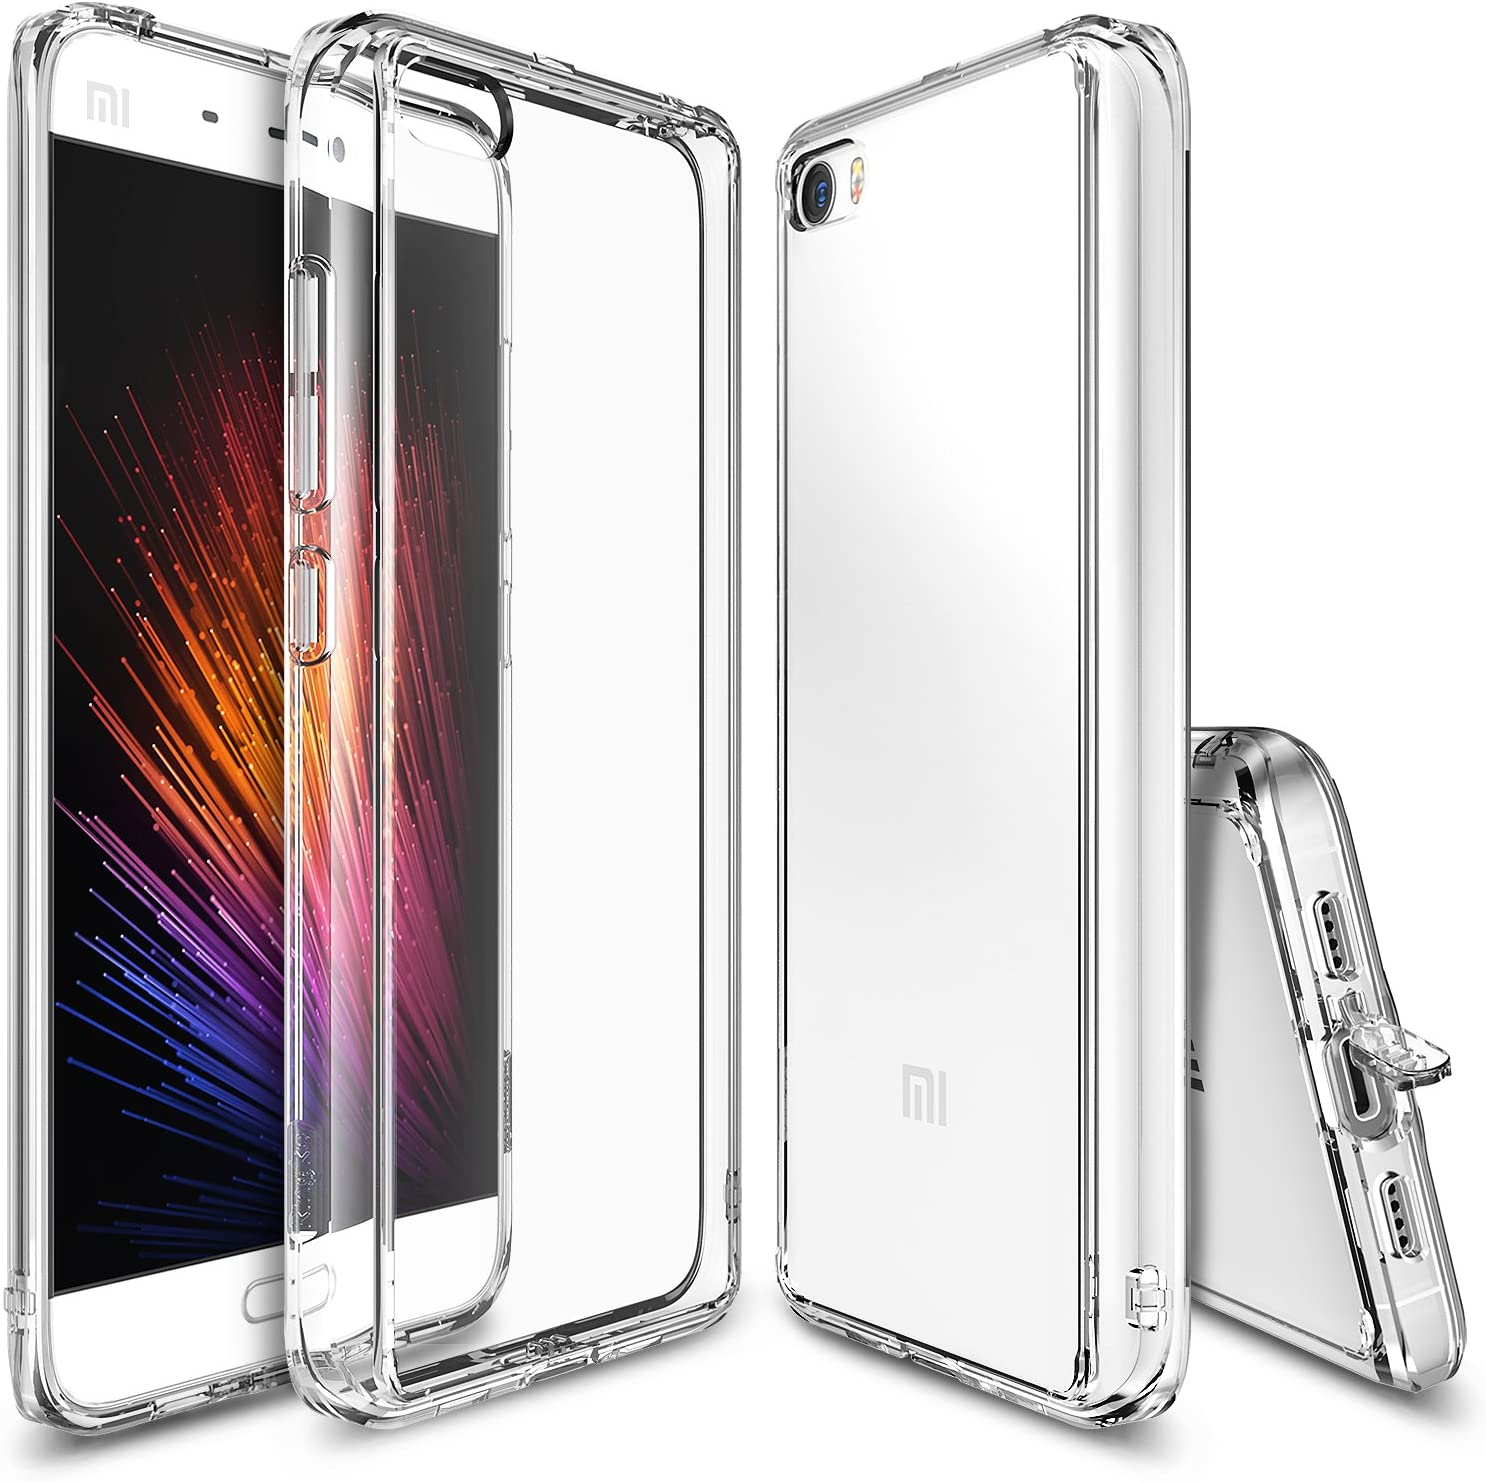 Ringke Xiaomi Mi 5 Case Funda, [Fusion] Crystal Clear PC Back TPU Bumper [Drop Protection/Shock Absorption Technology][Attached Dust Cap] For Xaomi MI 5 - Clear